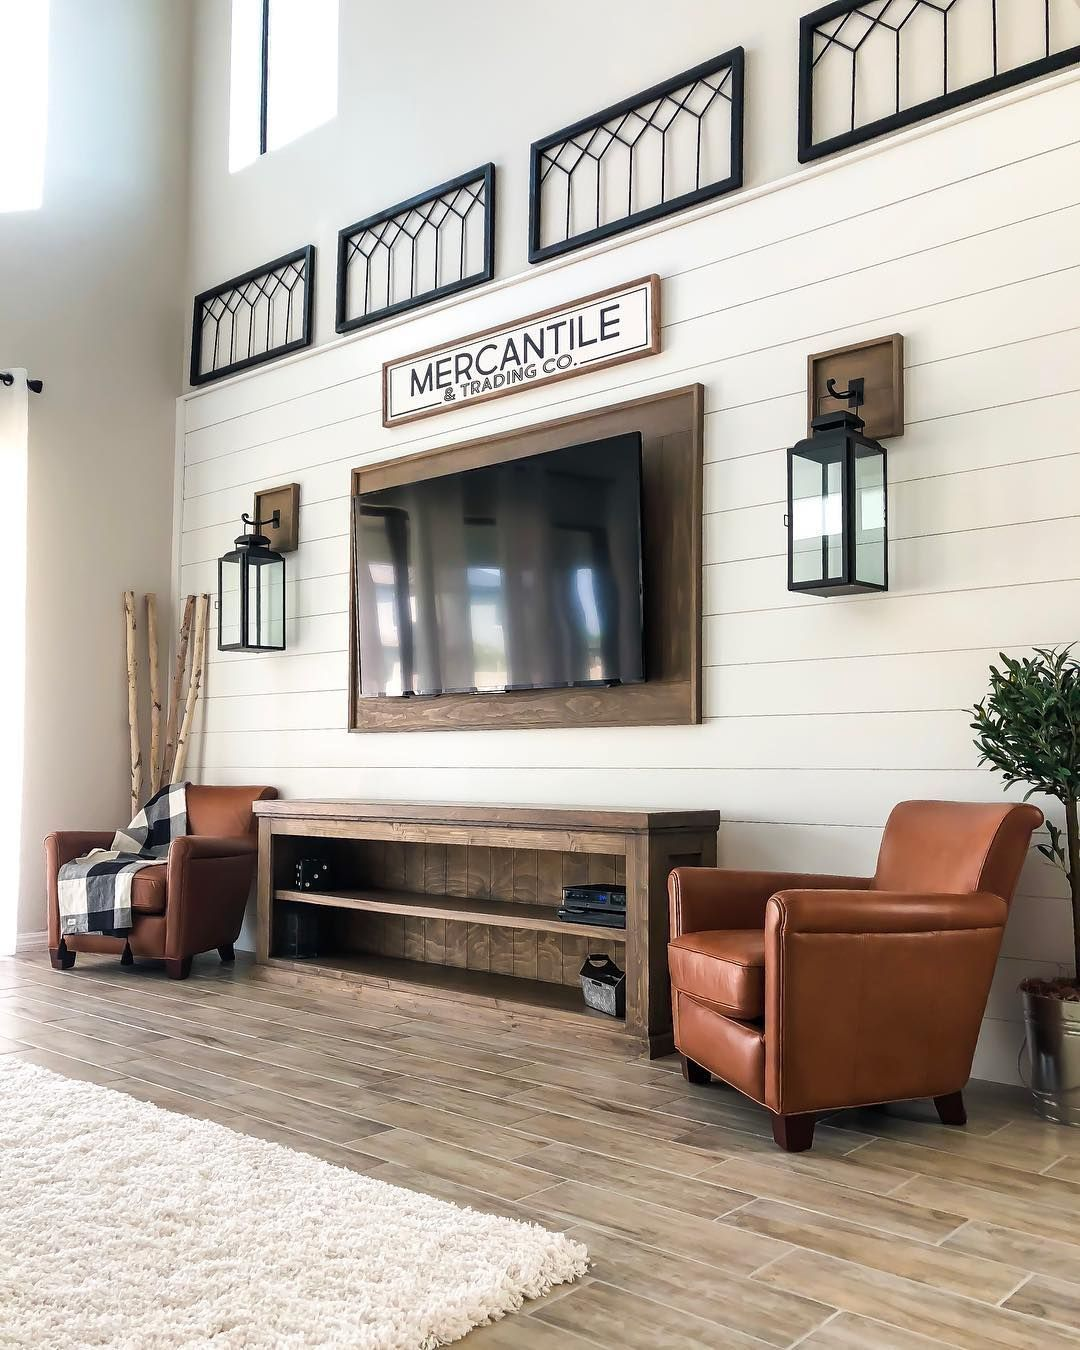 Michael And Keleigh On Instagram It S Hump Day And Only Two More Days Till The Week Shiplap Living Room Accent Walls In Living Room Farm House Living Room